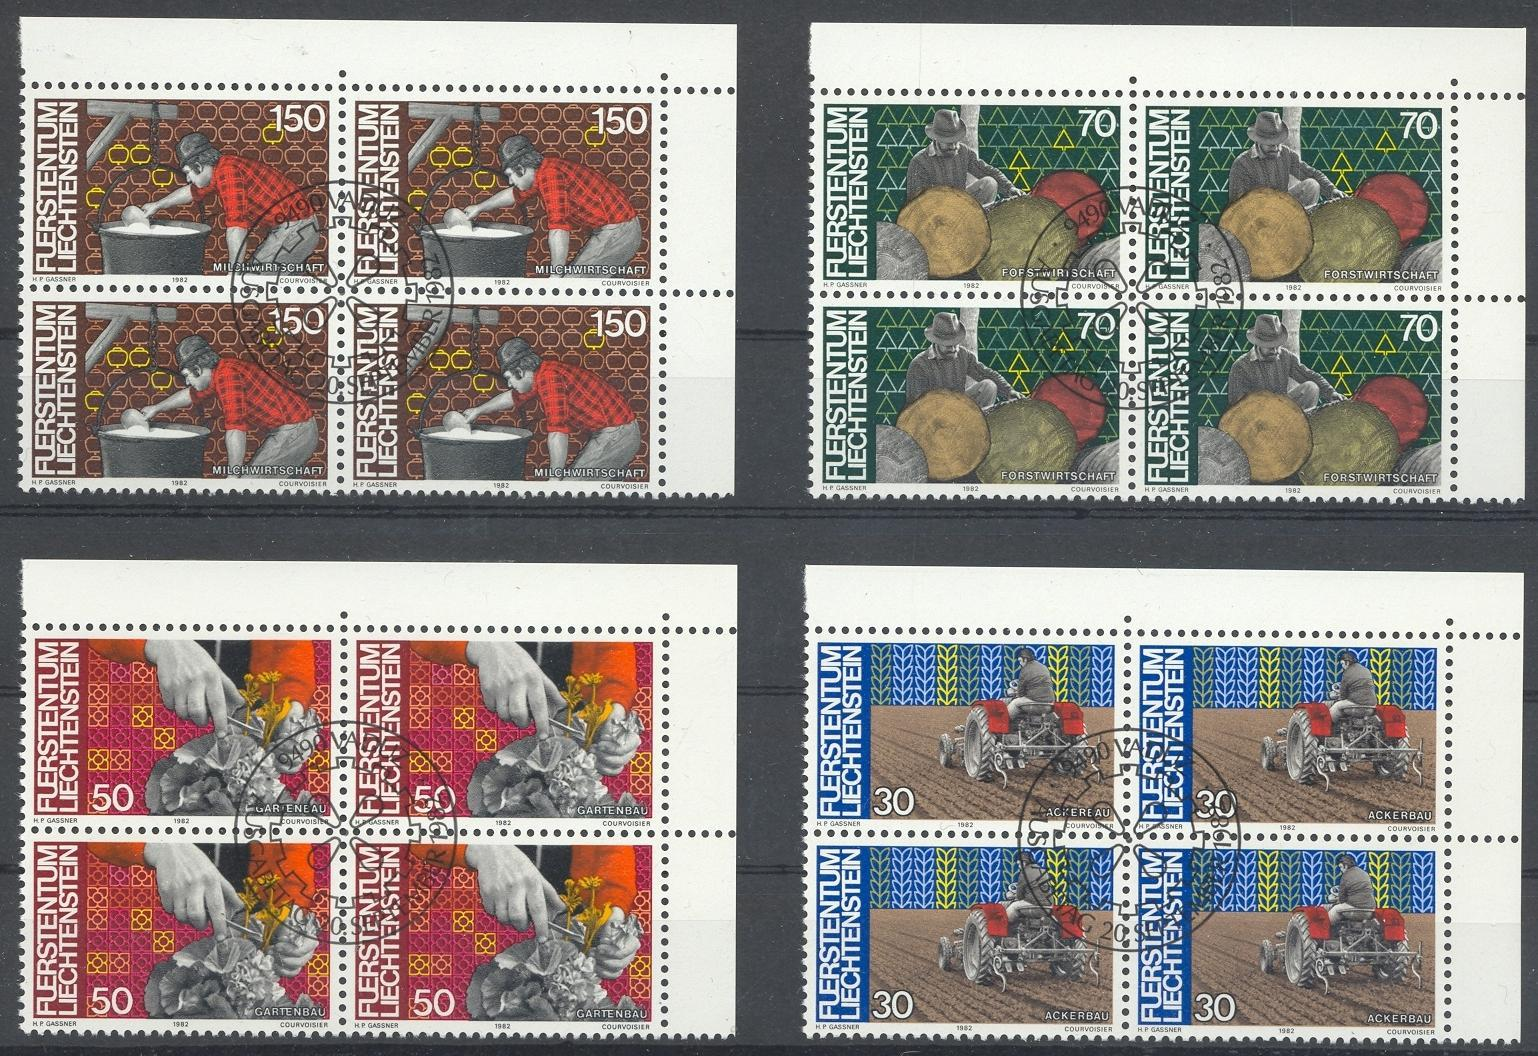 Stamps with Agriculture, Trades from Liechtenstein (image for product #032172)